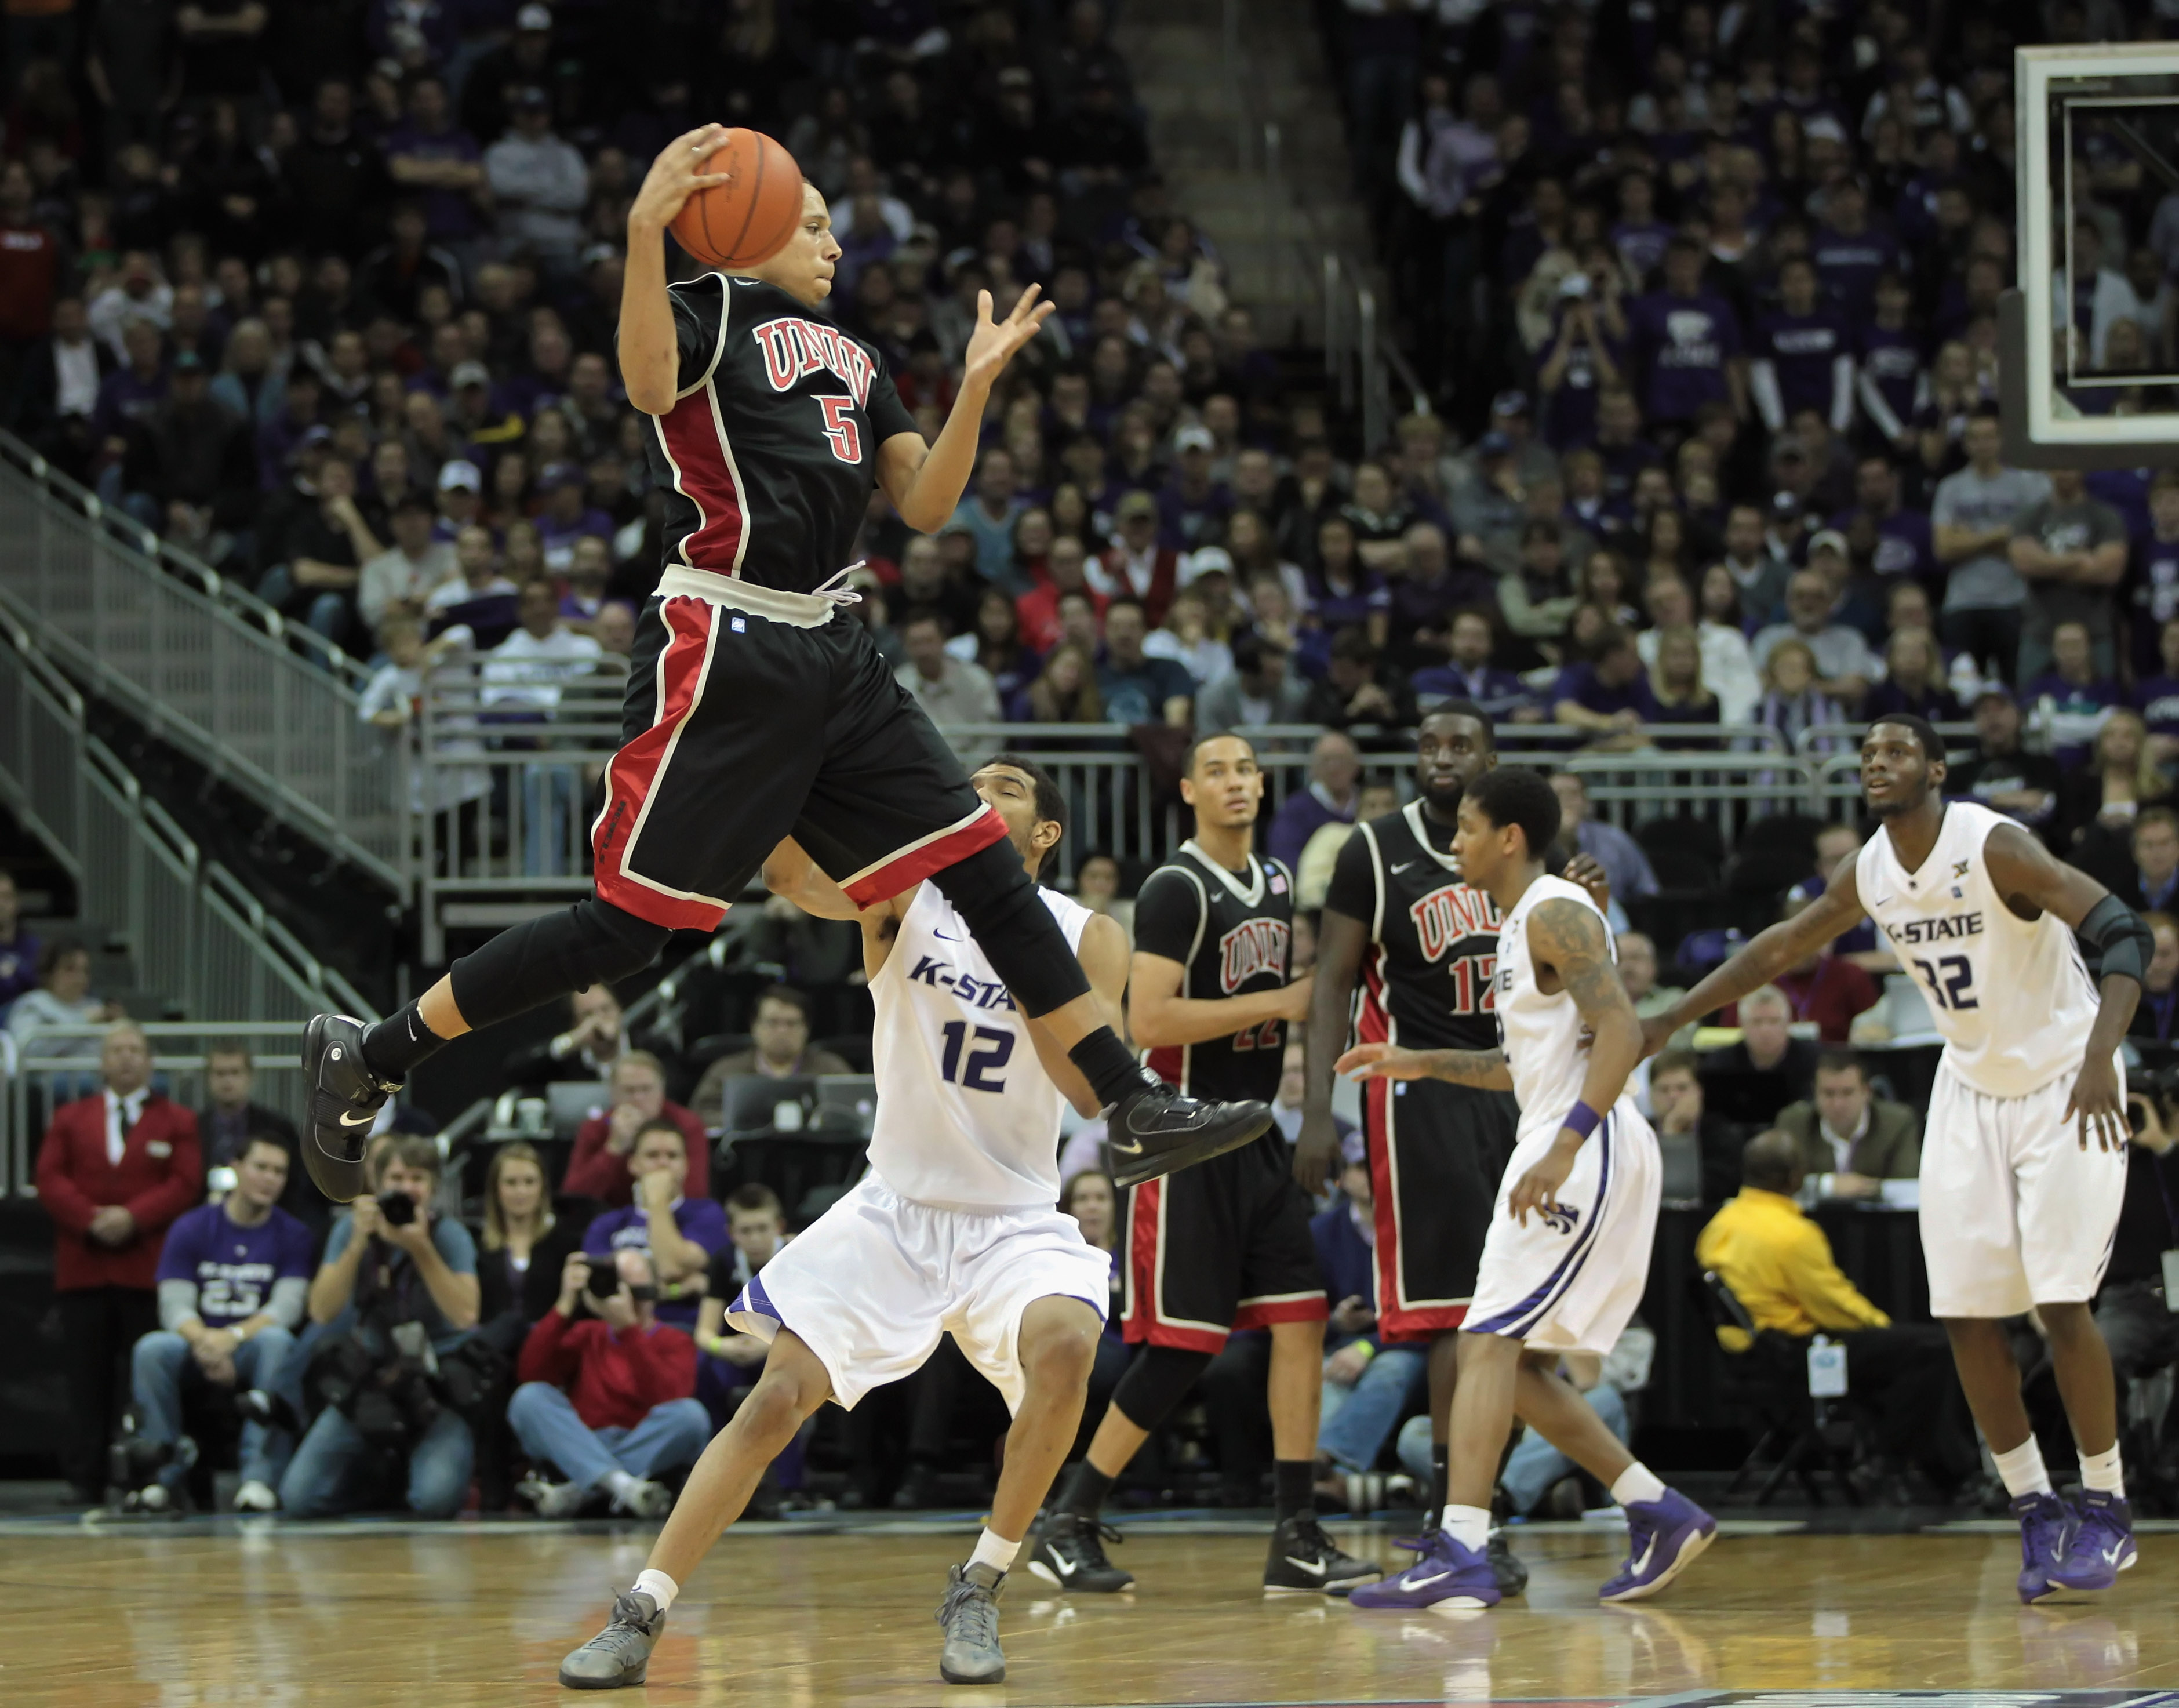 KANSAS CITY, MO - DECEMBER 21:  Derrick Jasper #5 of the UNLV Rebels grabs a pass against the Kansas State Wildcats during the game on December 21, 2010 at the Sprint Center in Kansas City, Missouri.  (Photo by Jamie Squire/Getty Images)